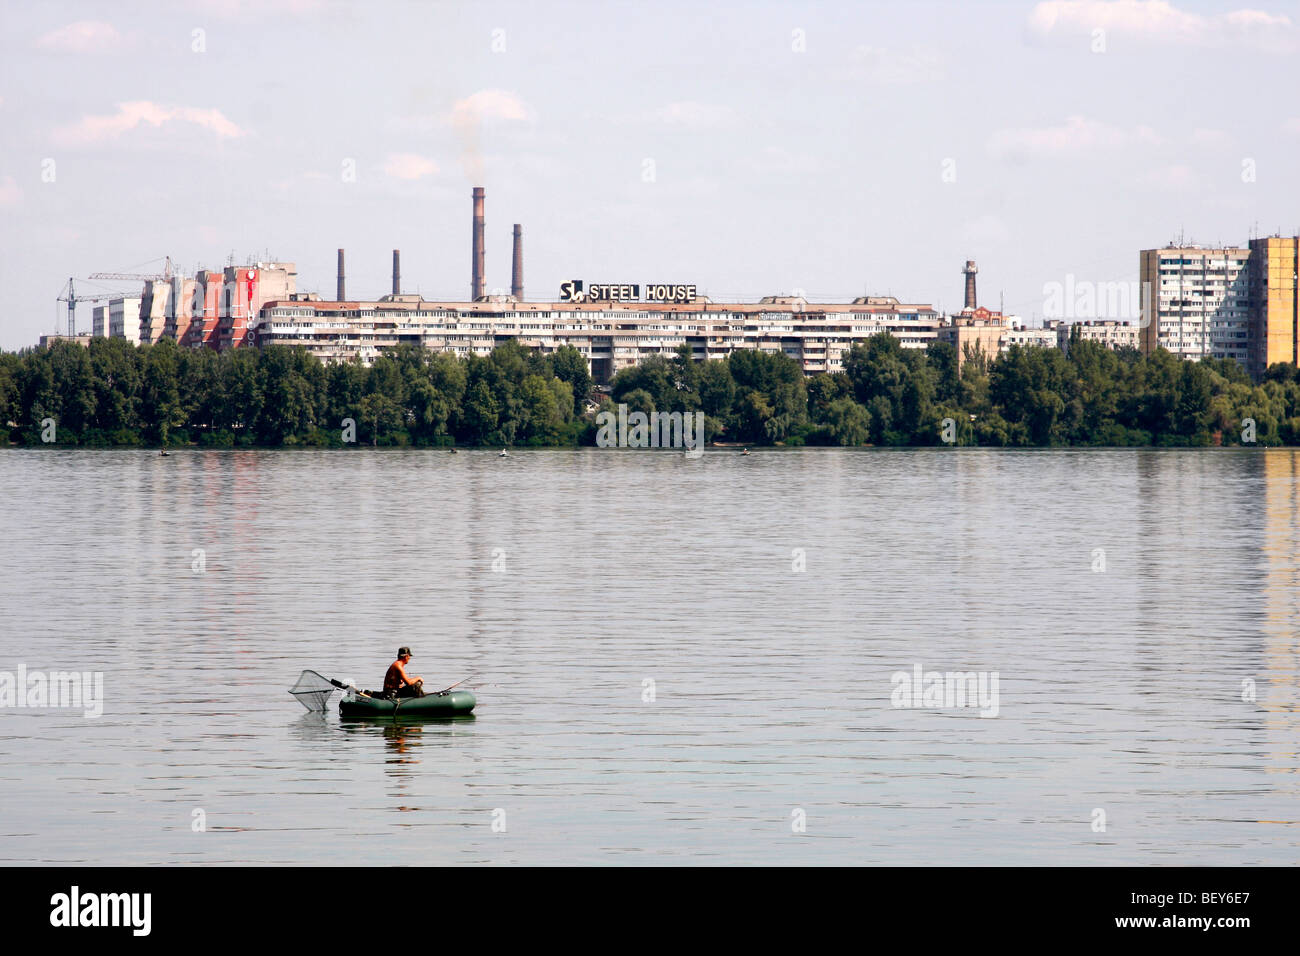 Man fishes from a boat on Dnipro river in Dnipropetrovsk Ukraine - Stock Image